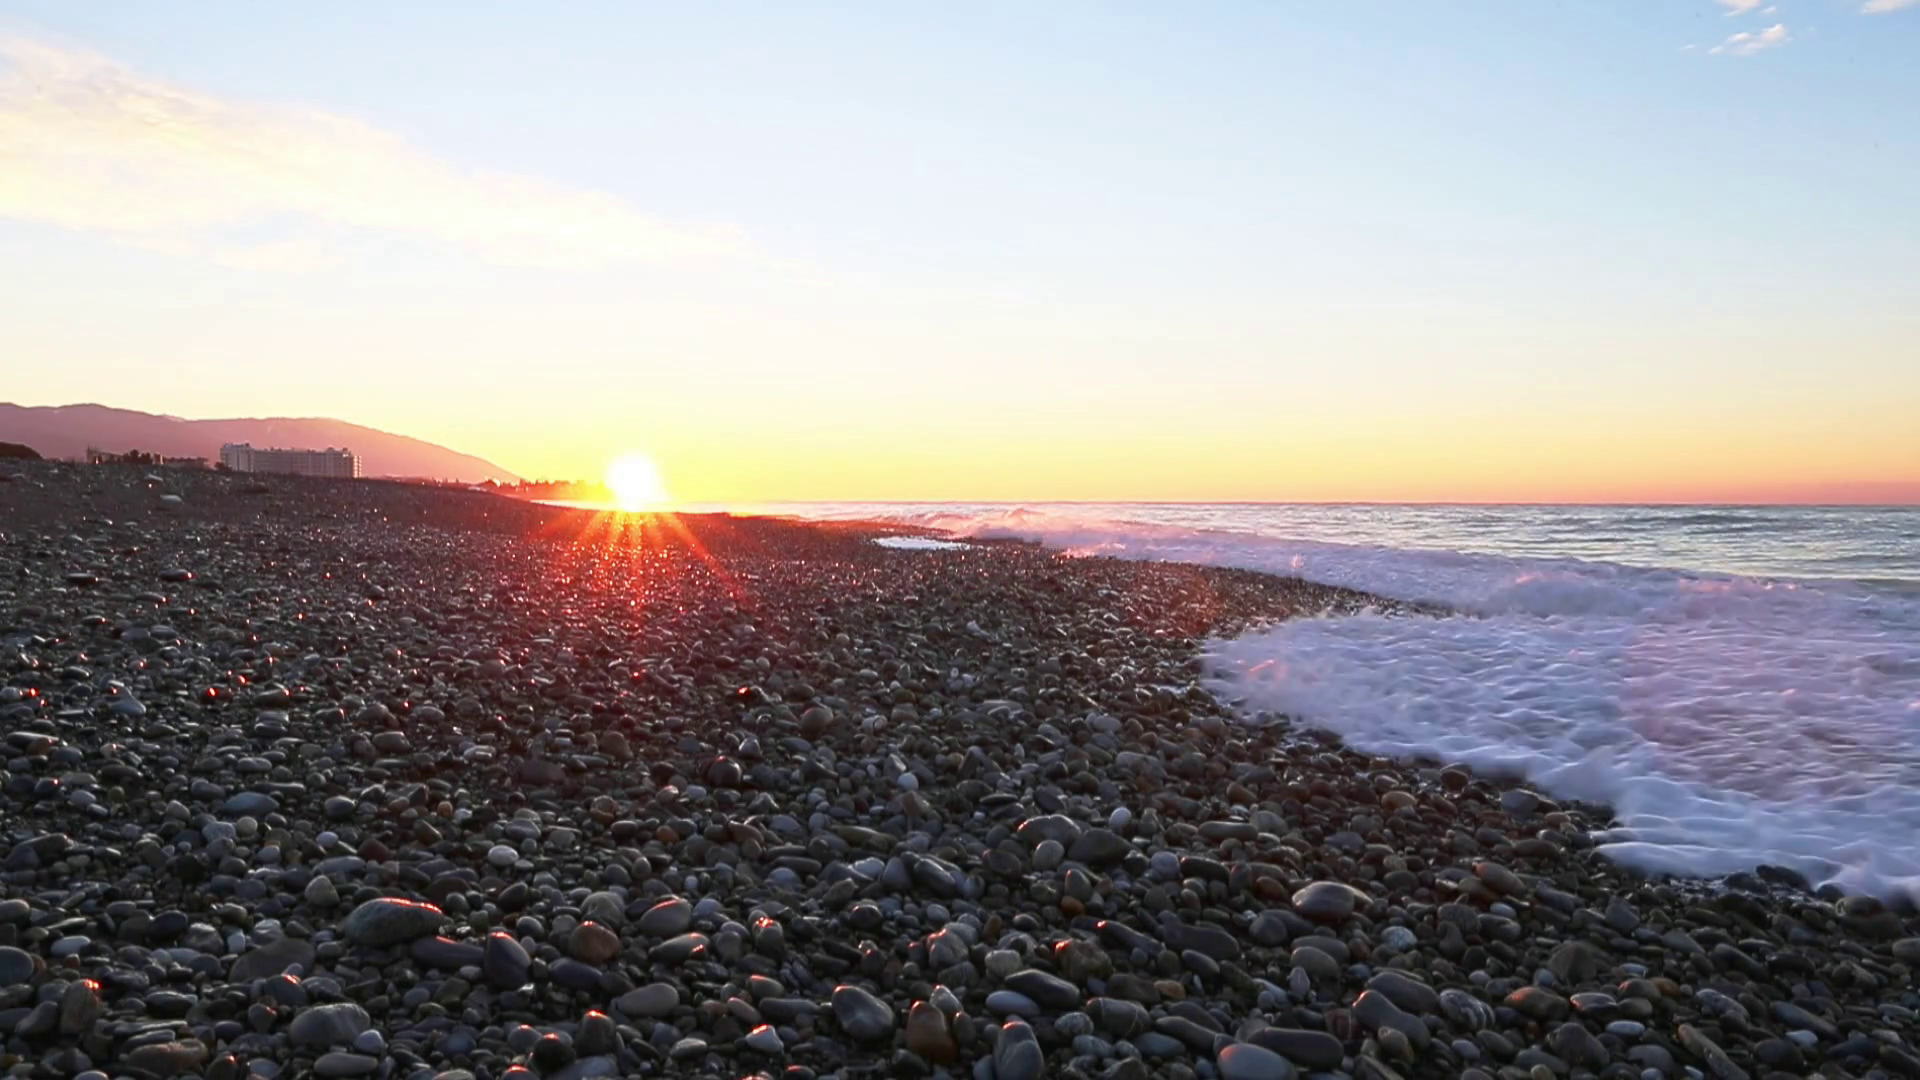 Sunrise panorama on seashore morning. Stock Video Footage - Videoblocks